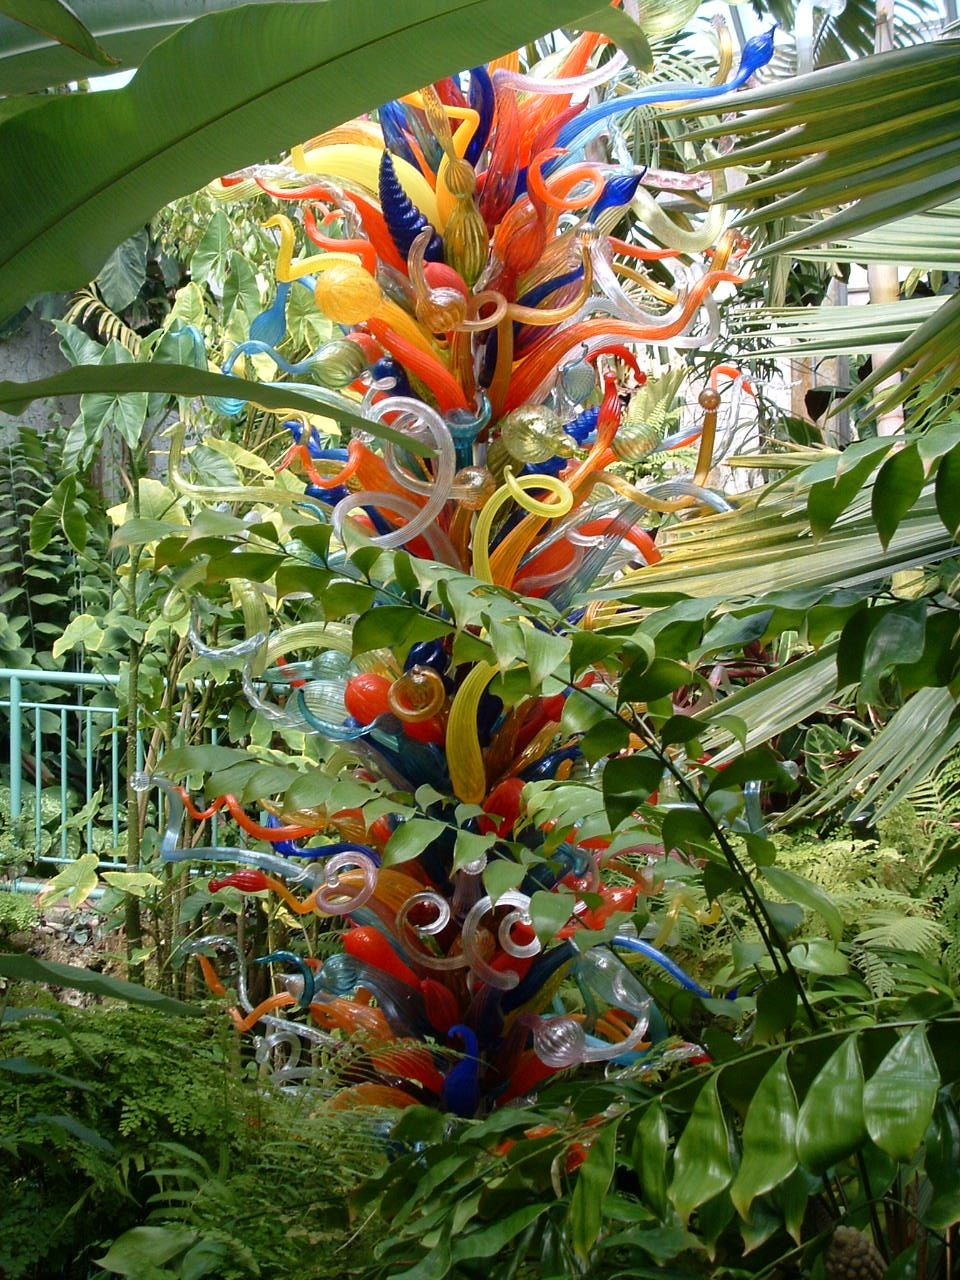 A Dale Chihuly Glass Sculpture At The Fairchild Tropical Gardens Miami Florida Your